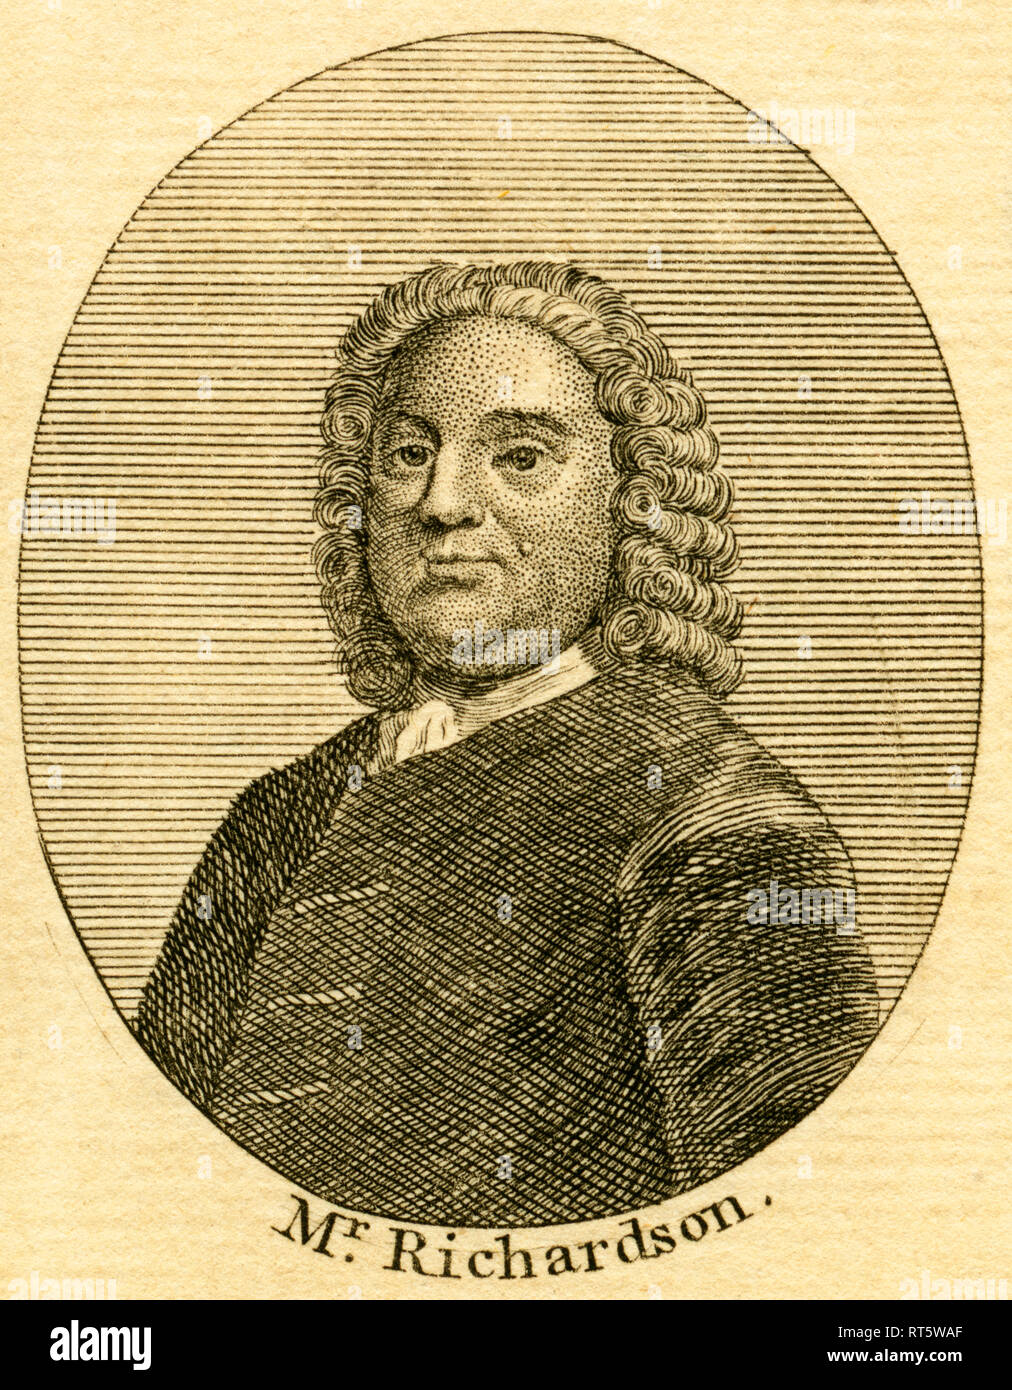 Samuel Richardson, British / English writer, 18th century, etching from an book of the 18th century, about 1766., Additional-Rights-Clearance-Info-Not-Available - Stock Image